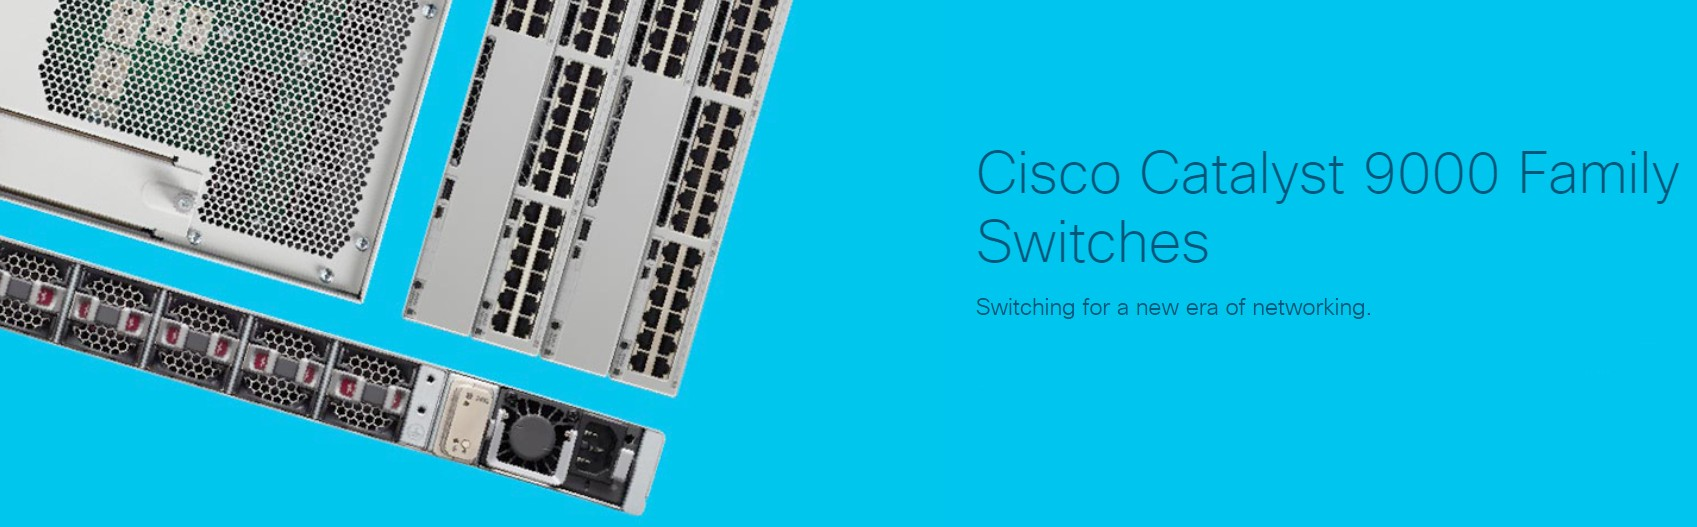 Cisco Catalyst 9000 Family Switches